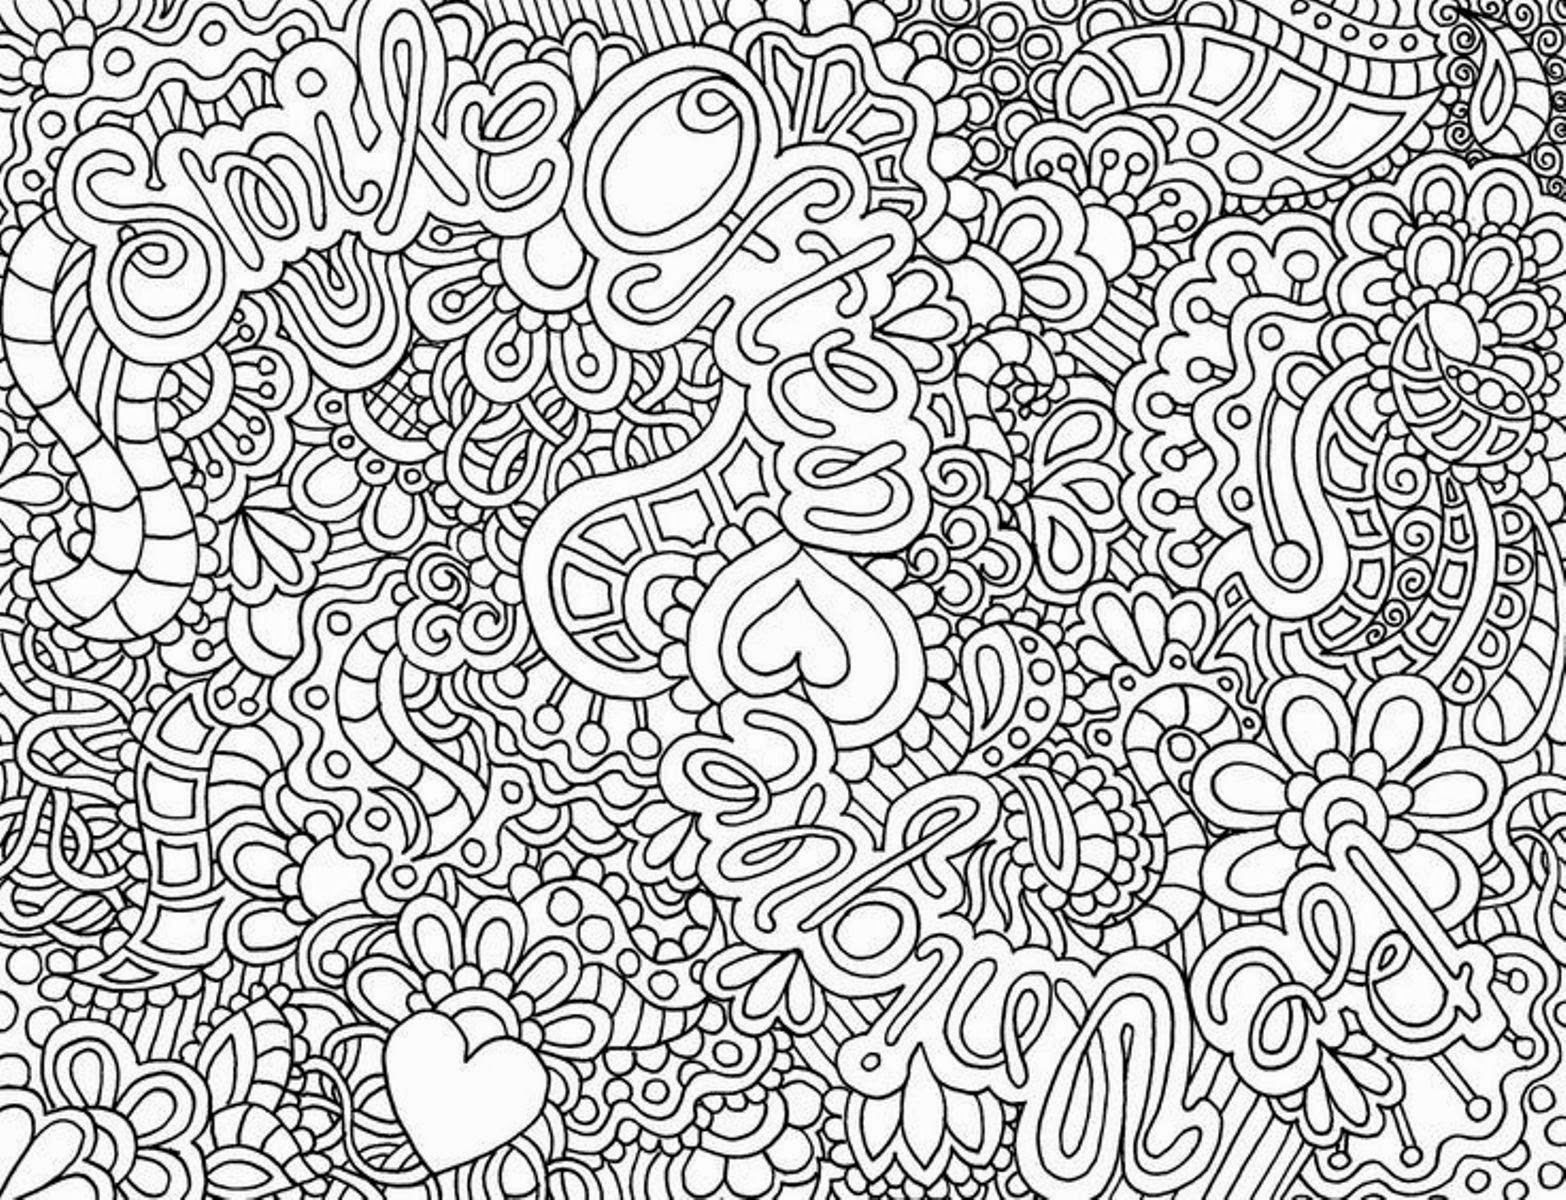 Coloring Pages Difficult But Fun Free And Printable Sheets 0